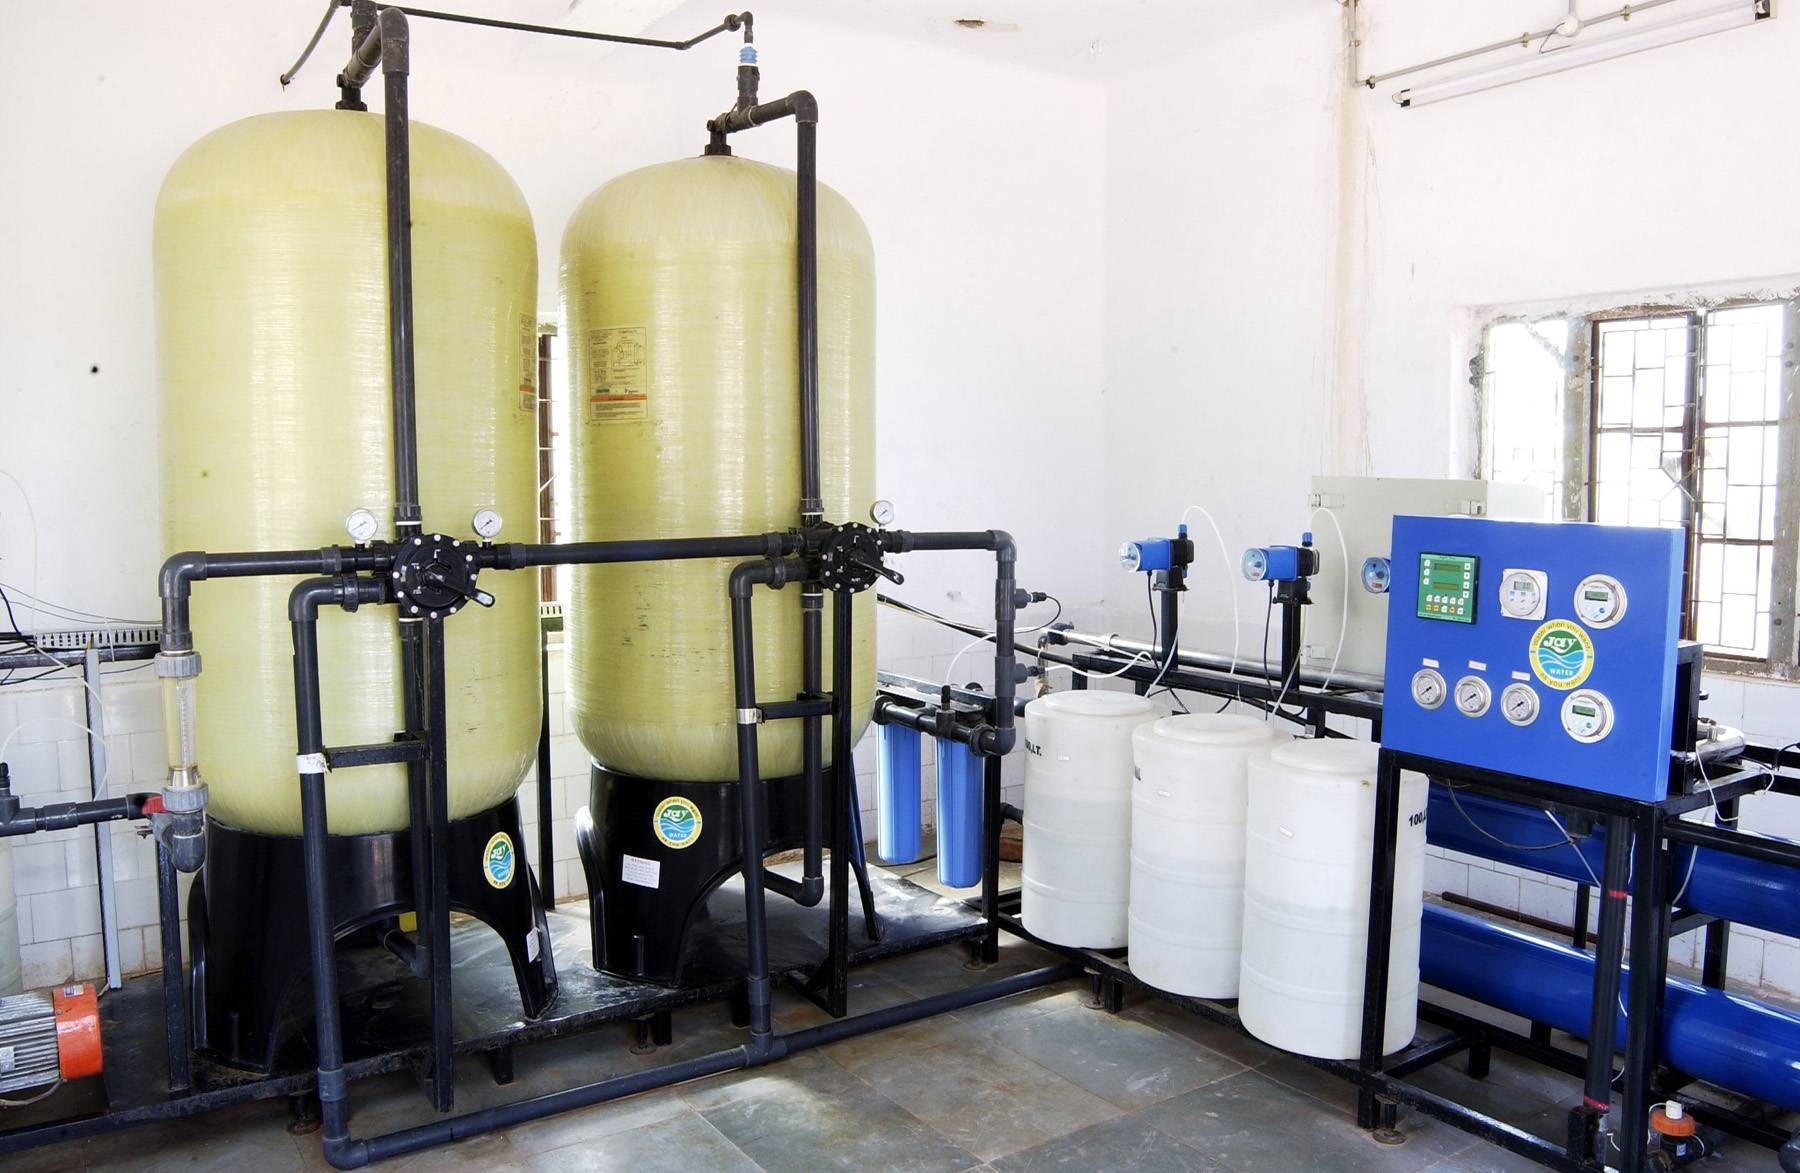 Ro plant (Reverse osmosis system)